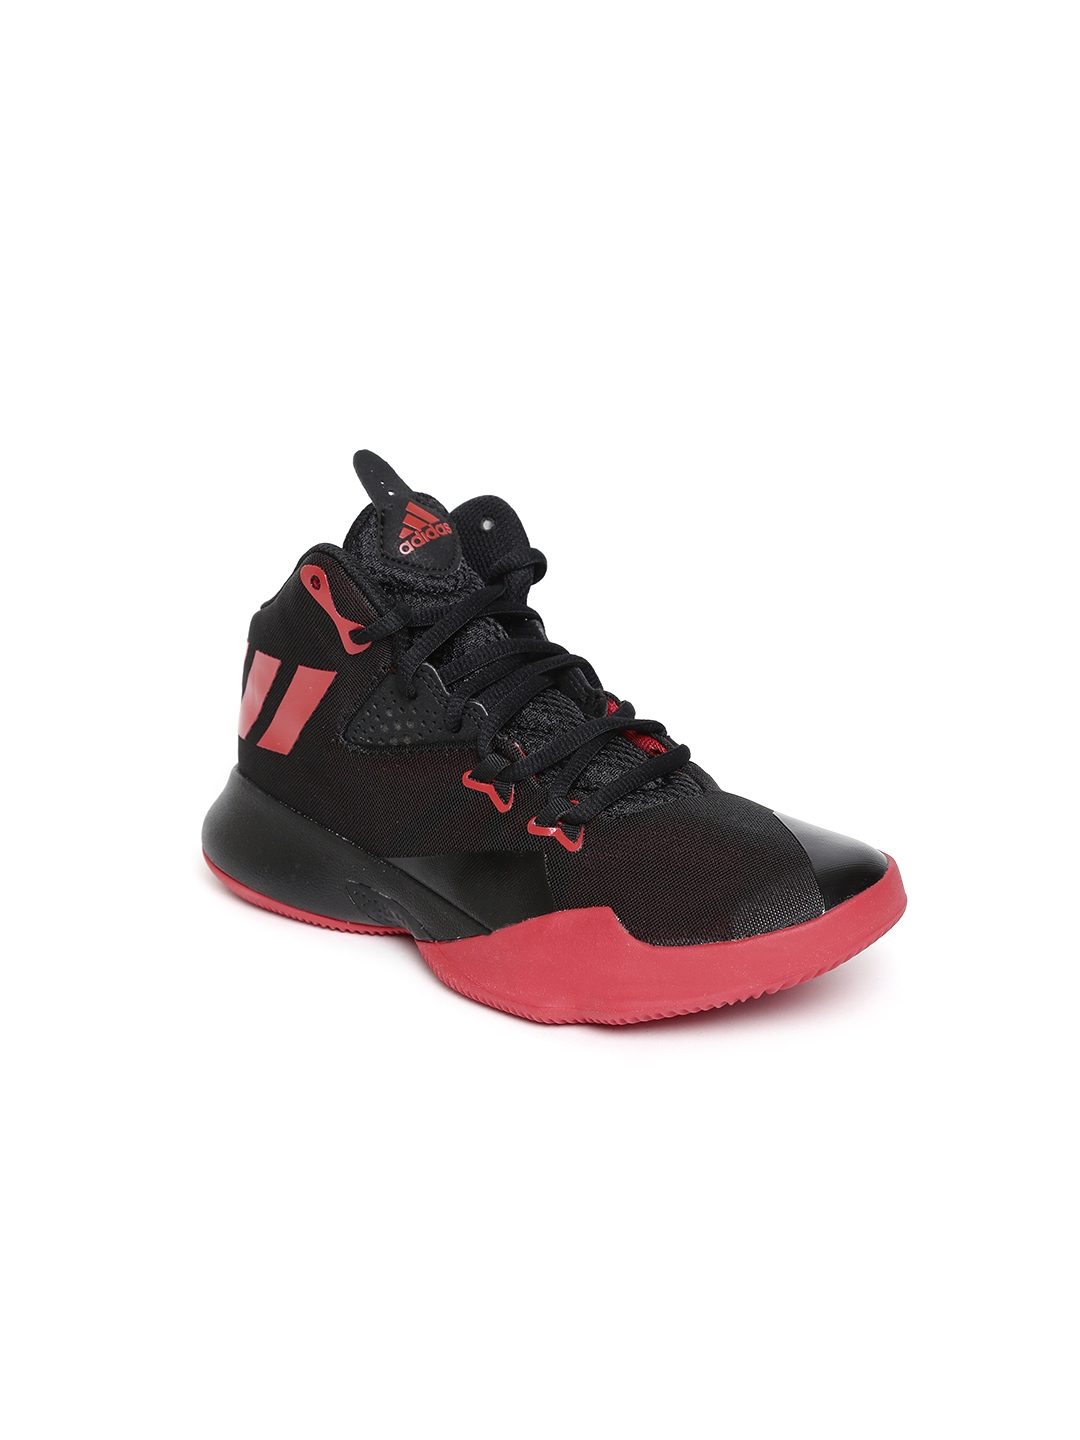 ca336489ff01 Buy ADIDAS Kids Black Dual Threat Basketball Shoes - Sports Shoes ...